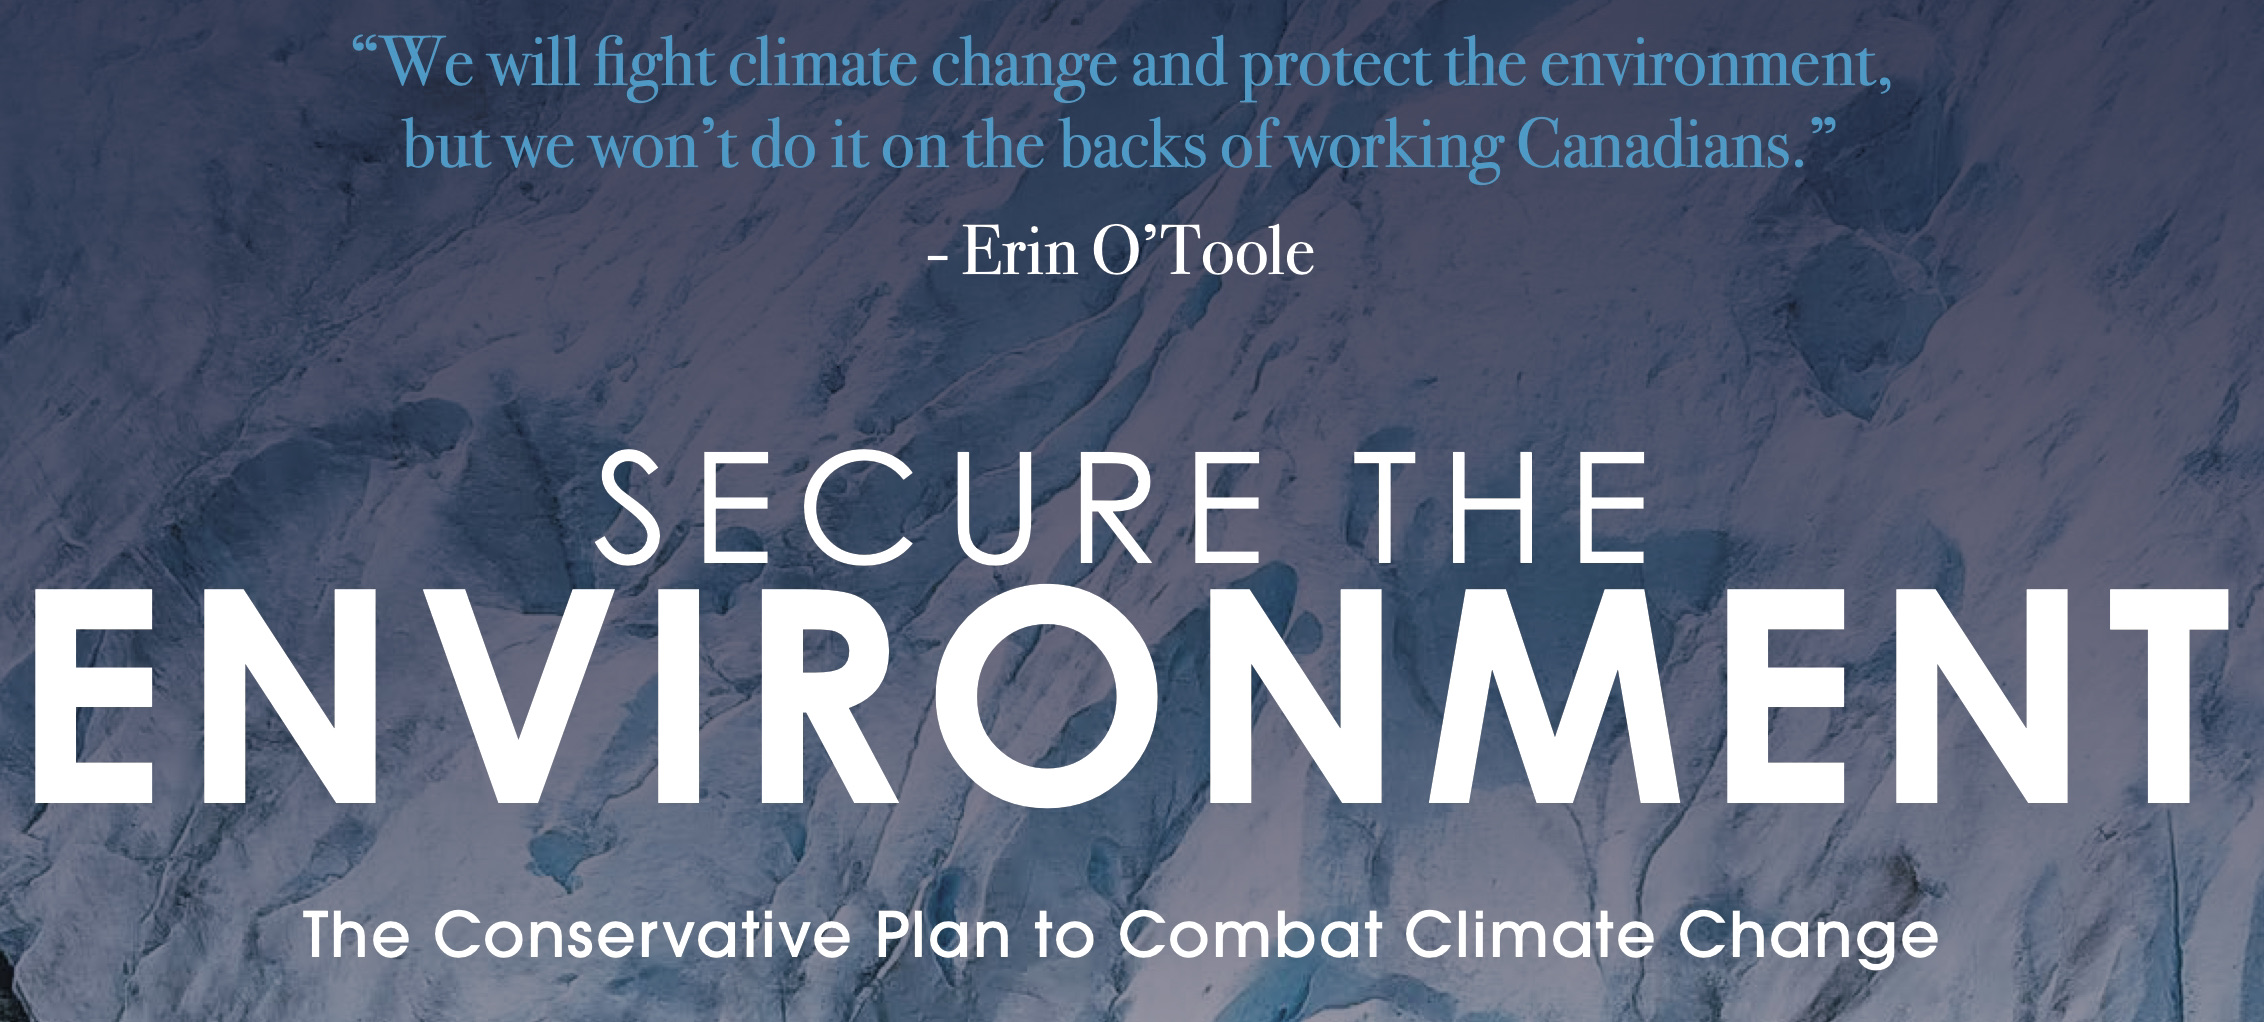 Conservative Leader Erin O'Toole Announces Climate Change Plan